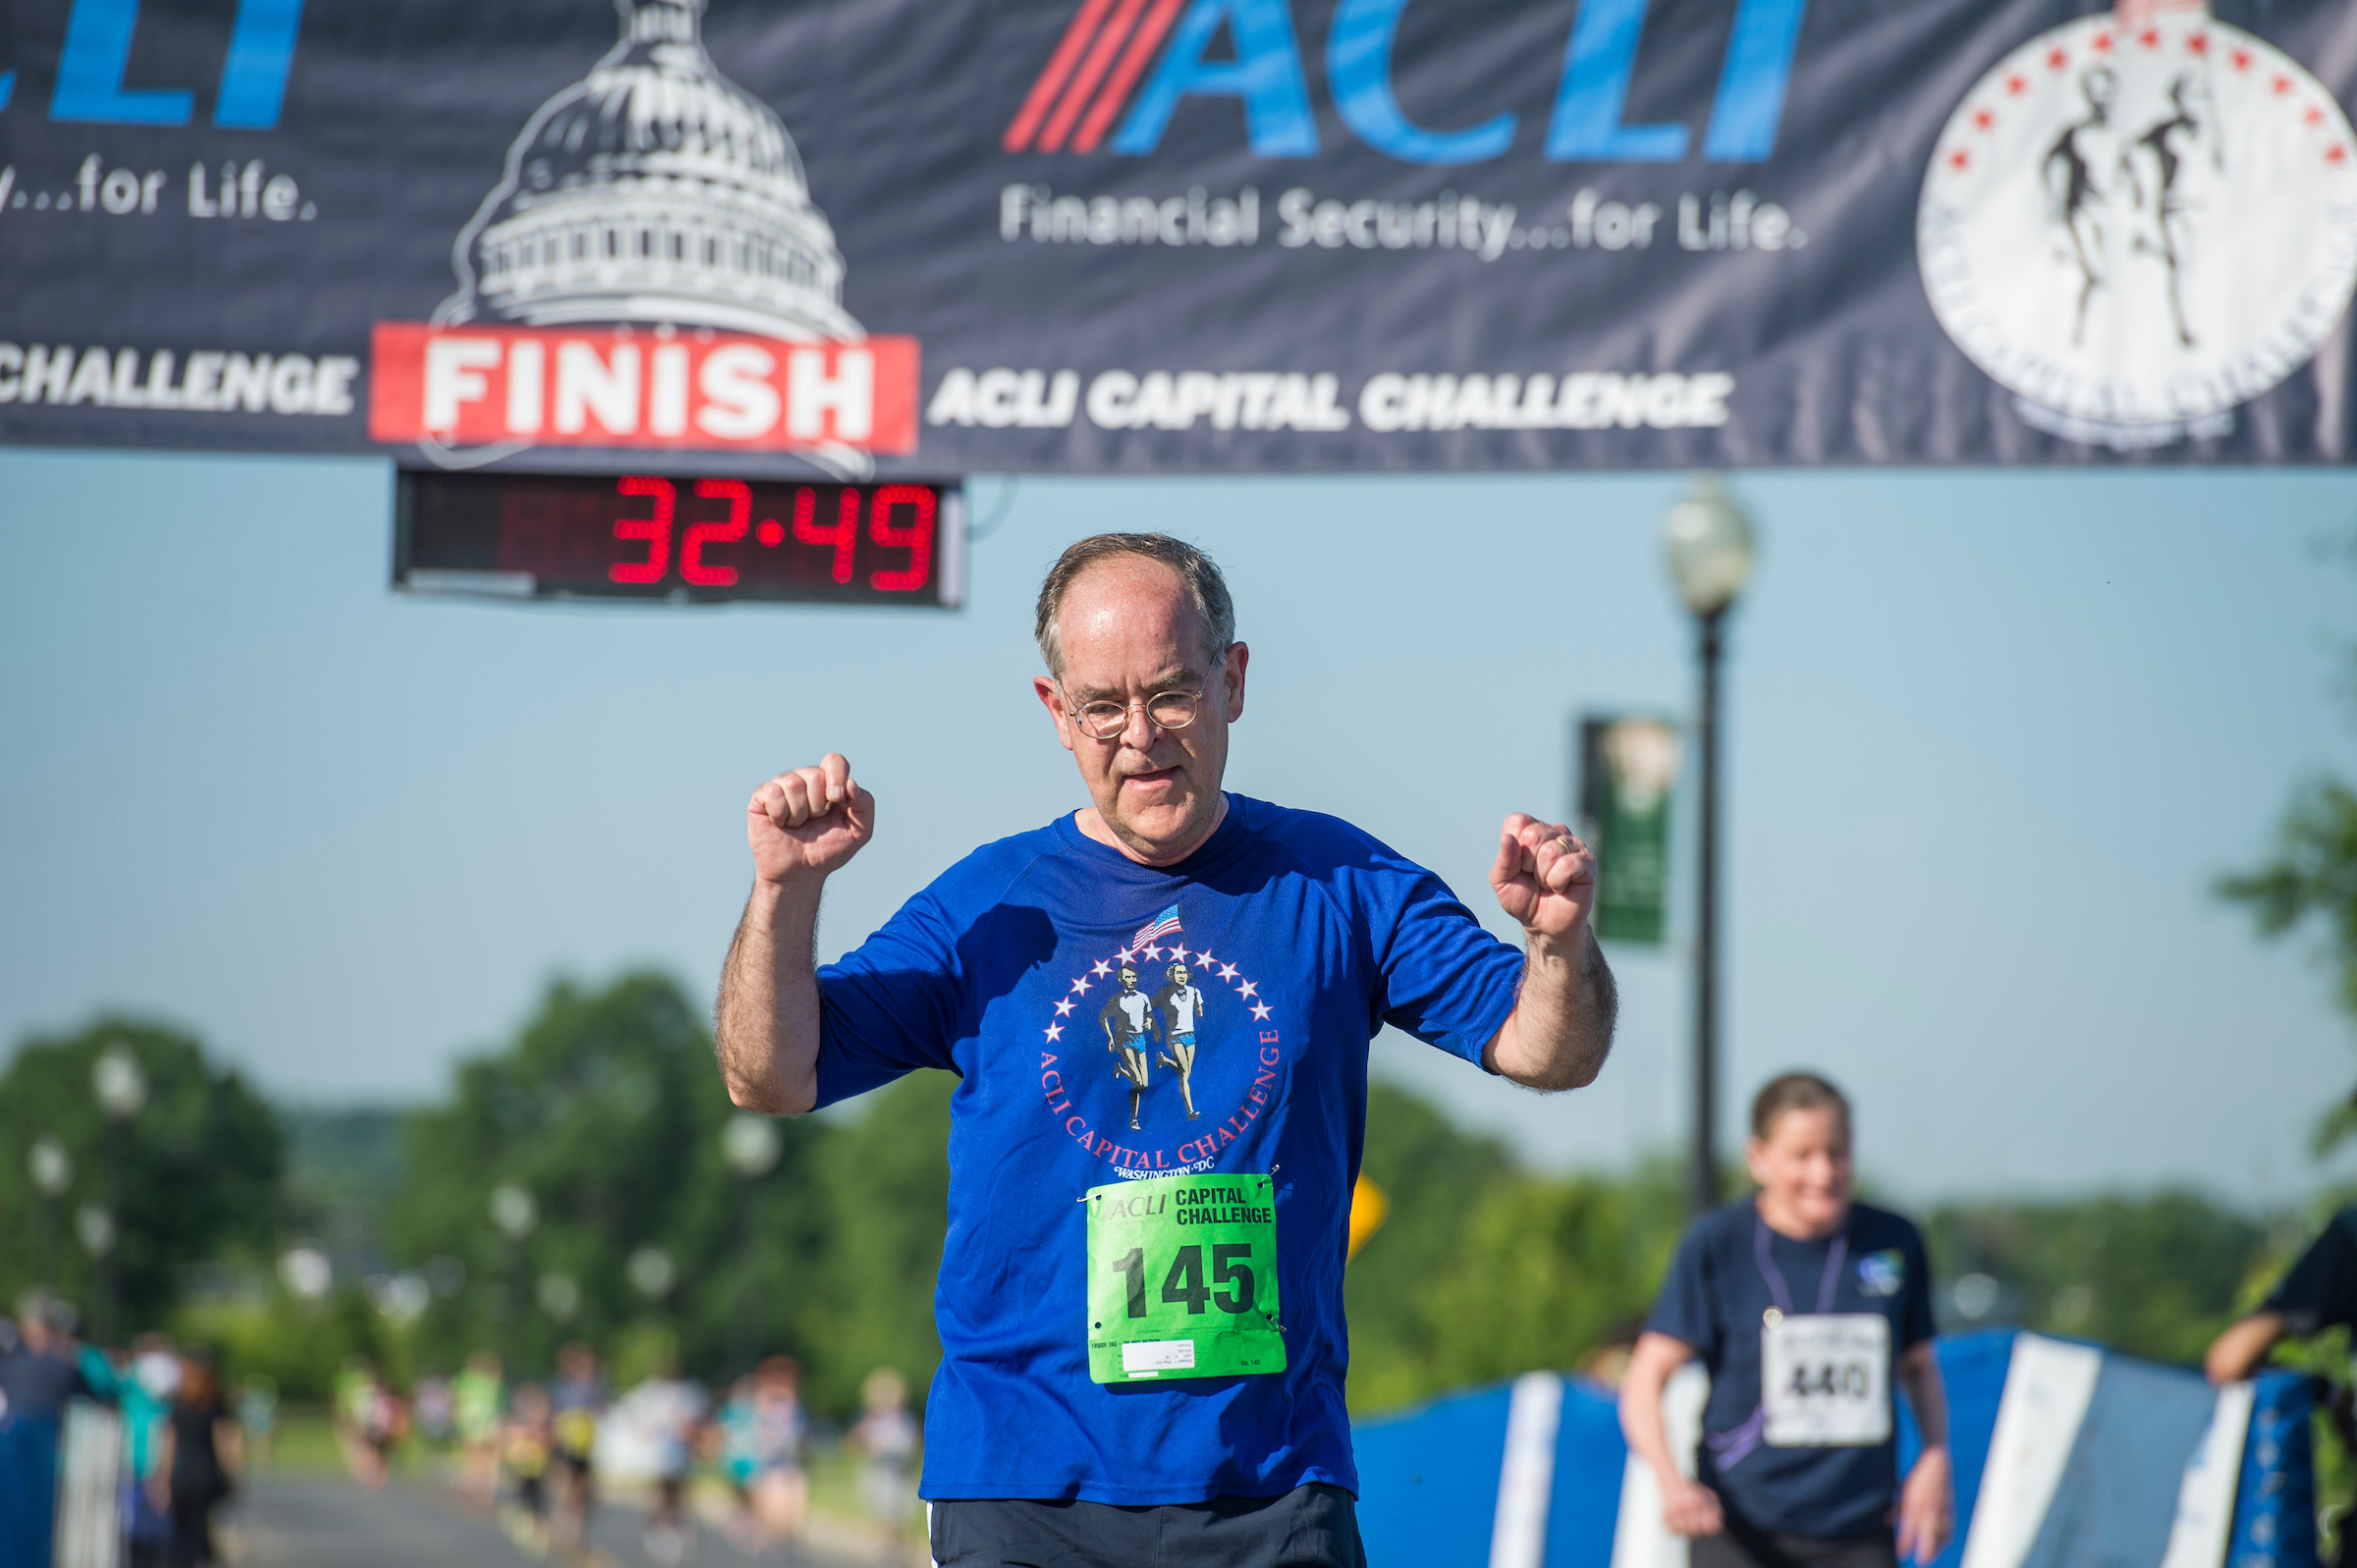 UNITED STATES - MAY 17: Rep. Jim Cooper, D-Tenn., runs in the ACLI Capital Challenge 3 Mile Team Race in Anacostia Park, May 17, 2017. (Photo By Tom Williams/CQ Roll Call)